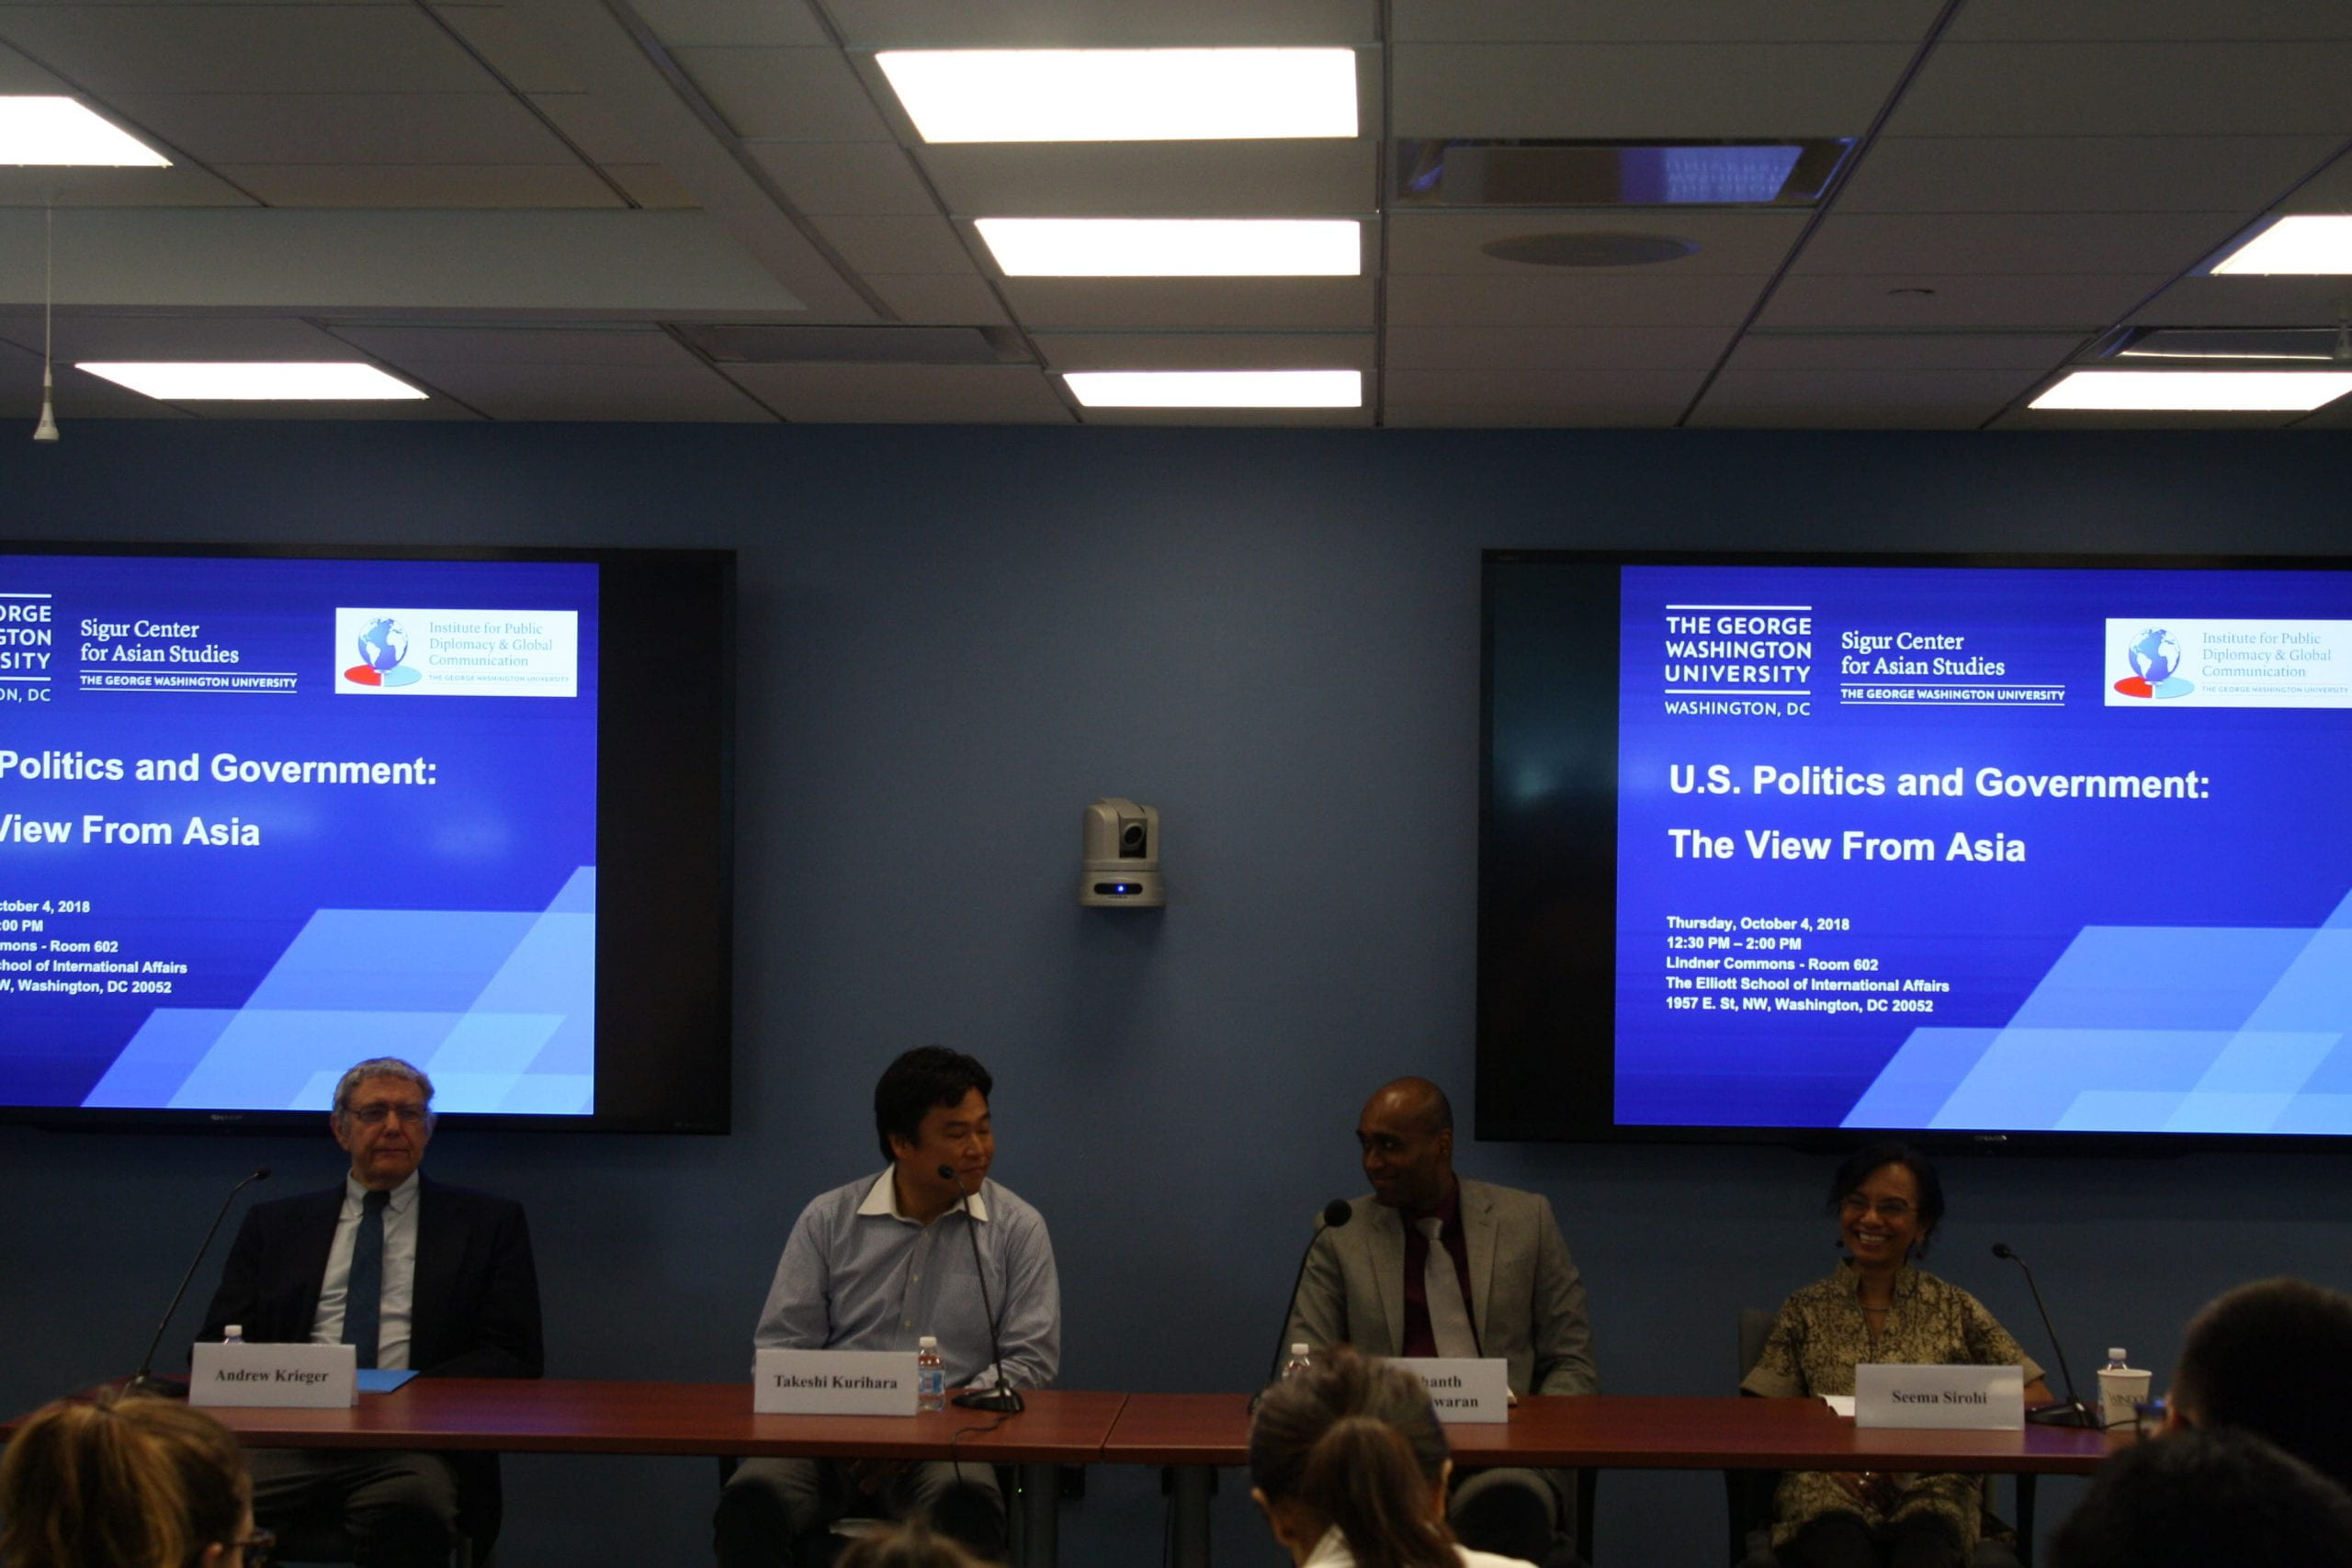 """An esteemed panel of journalists discussing """"U.S. Politics and Government: The View from Asia"""" on October 4, 2018. From left to right: Dr. Andrew Krieger, Takeshi Kurihara, Prashanth Parameswaran, and Seema Sirohi."""